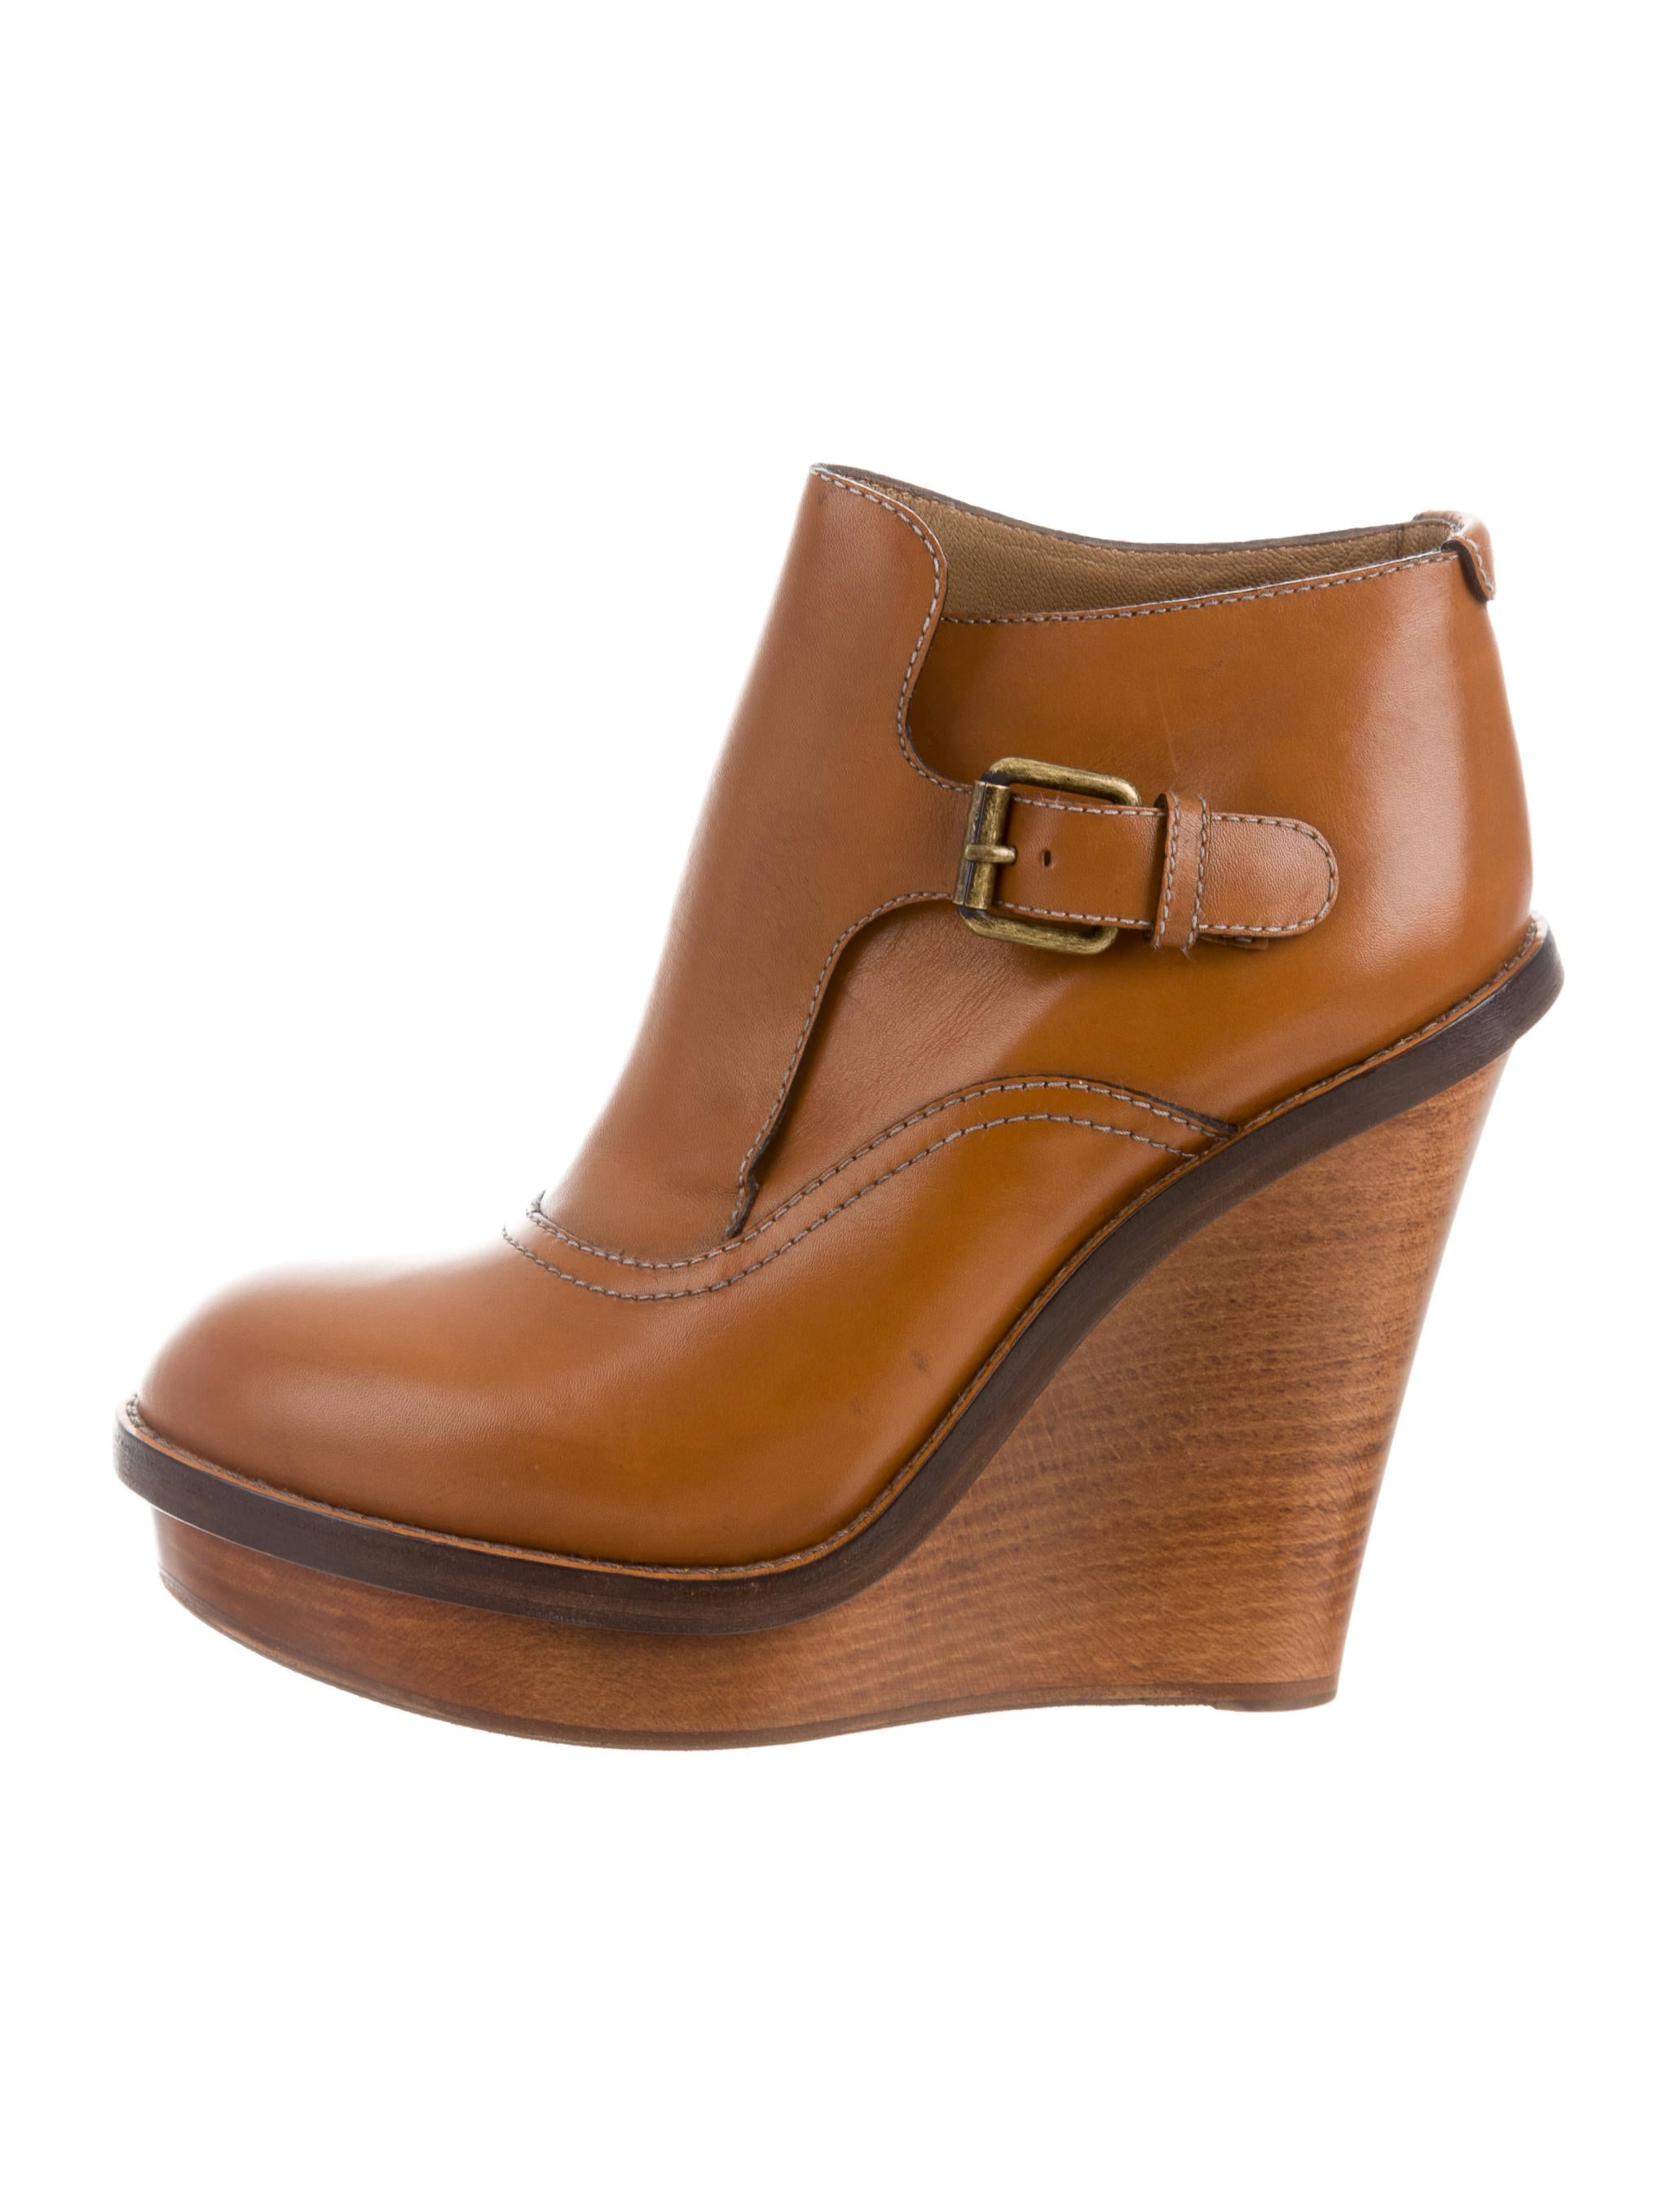 chlo 233 leather wedge ankle boots shoes chl51965 the